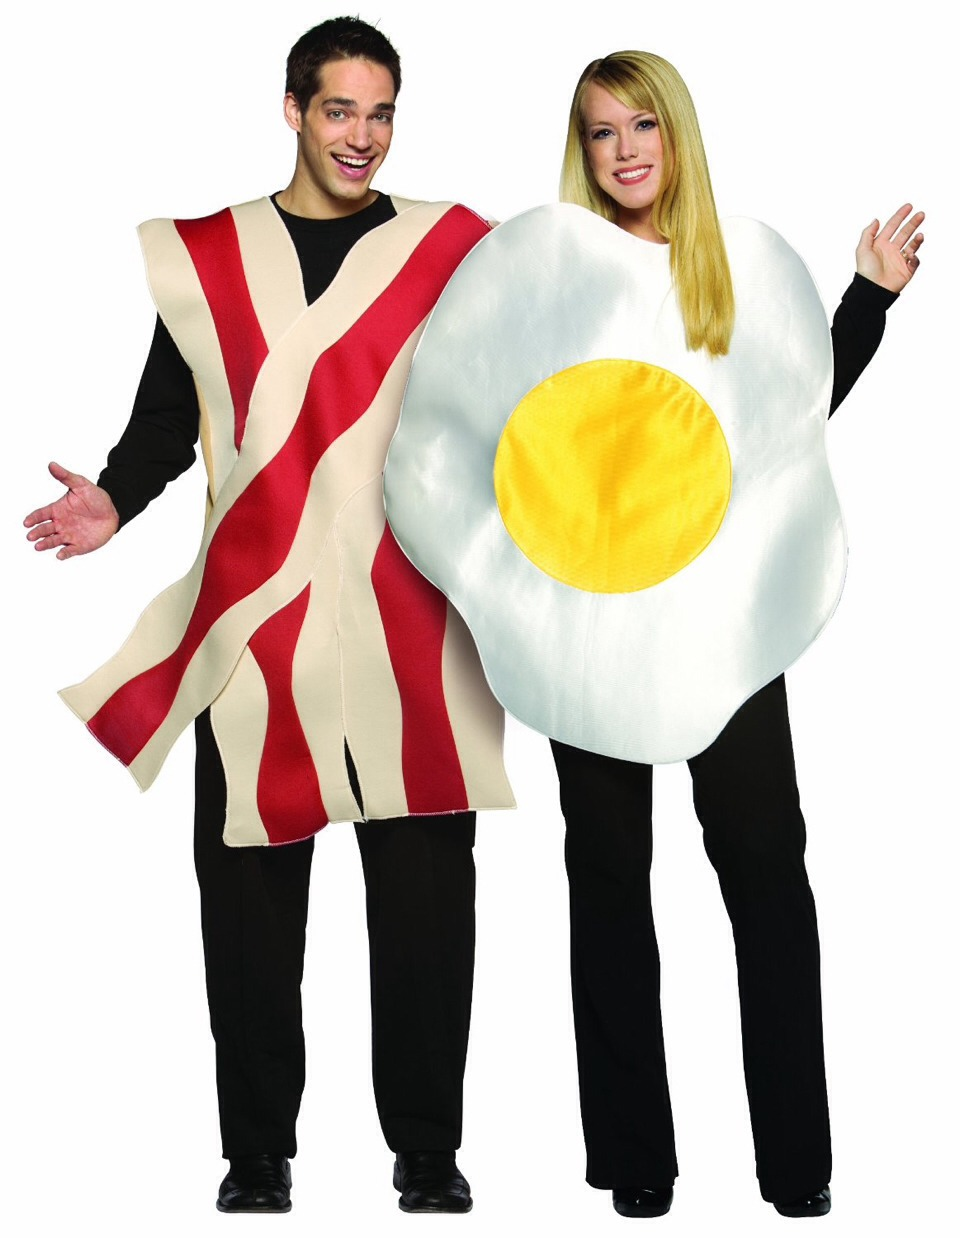 eggs and bacon!